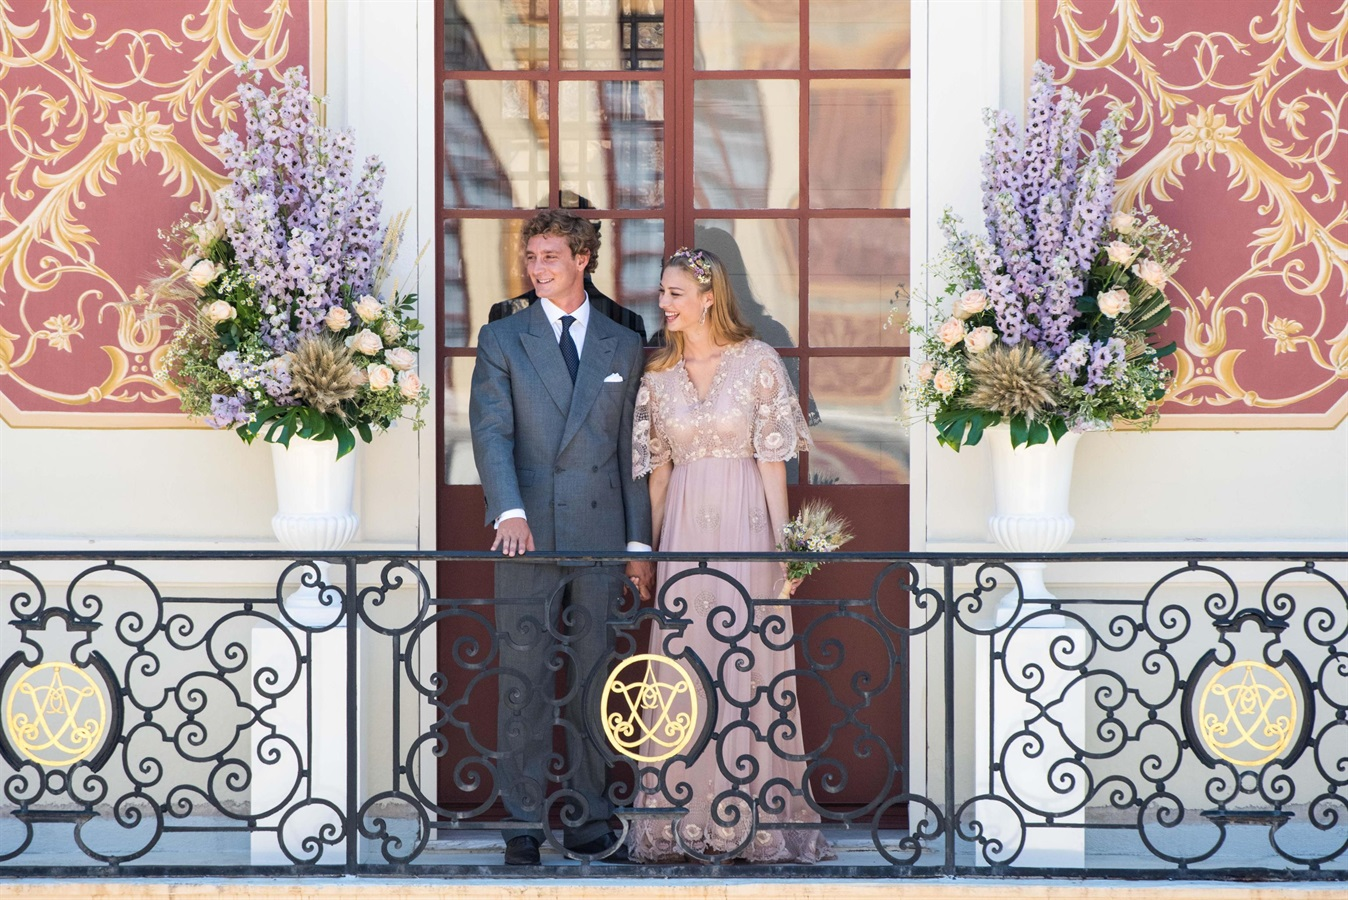 Pierre Casiraghi Beatrice Borromeo Wedding Monaco.jpg